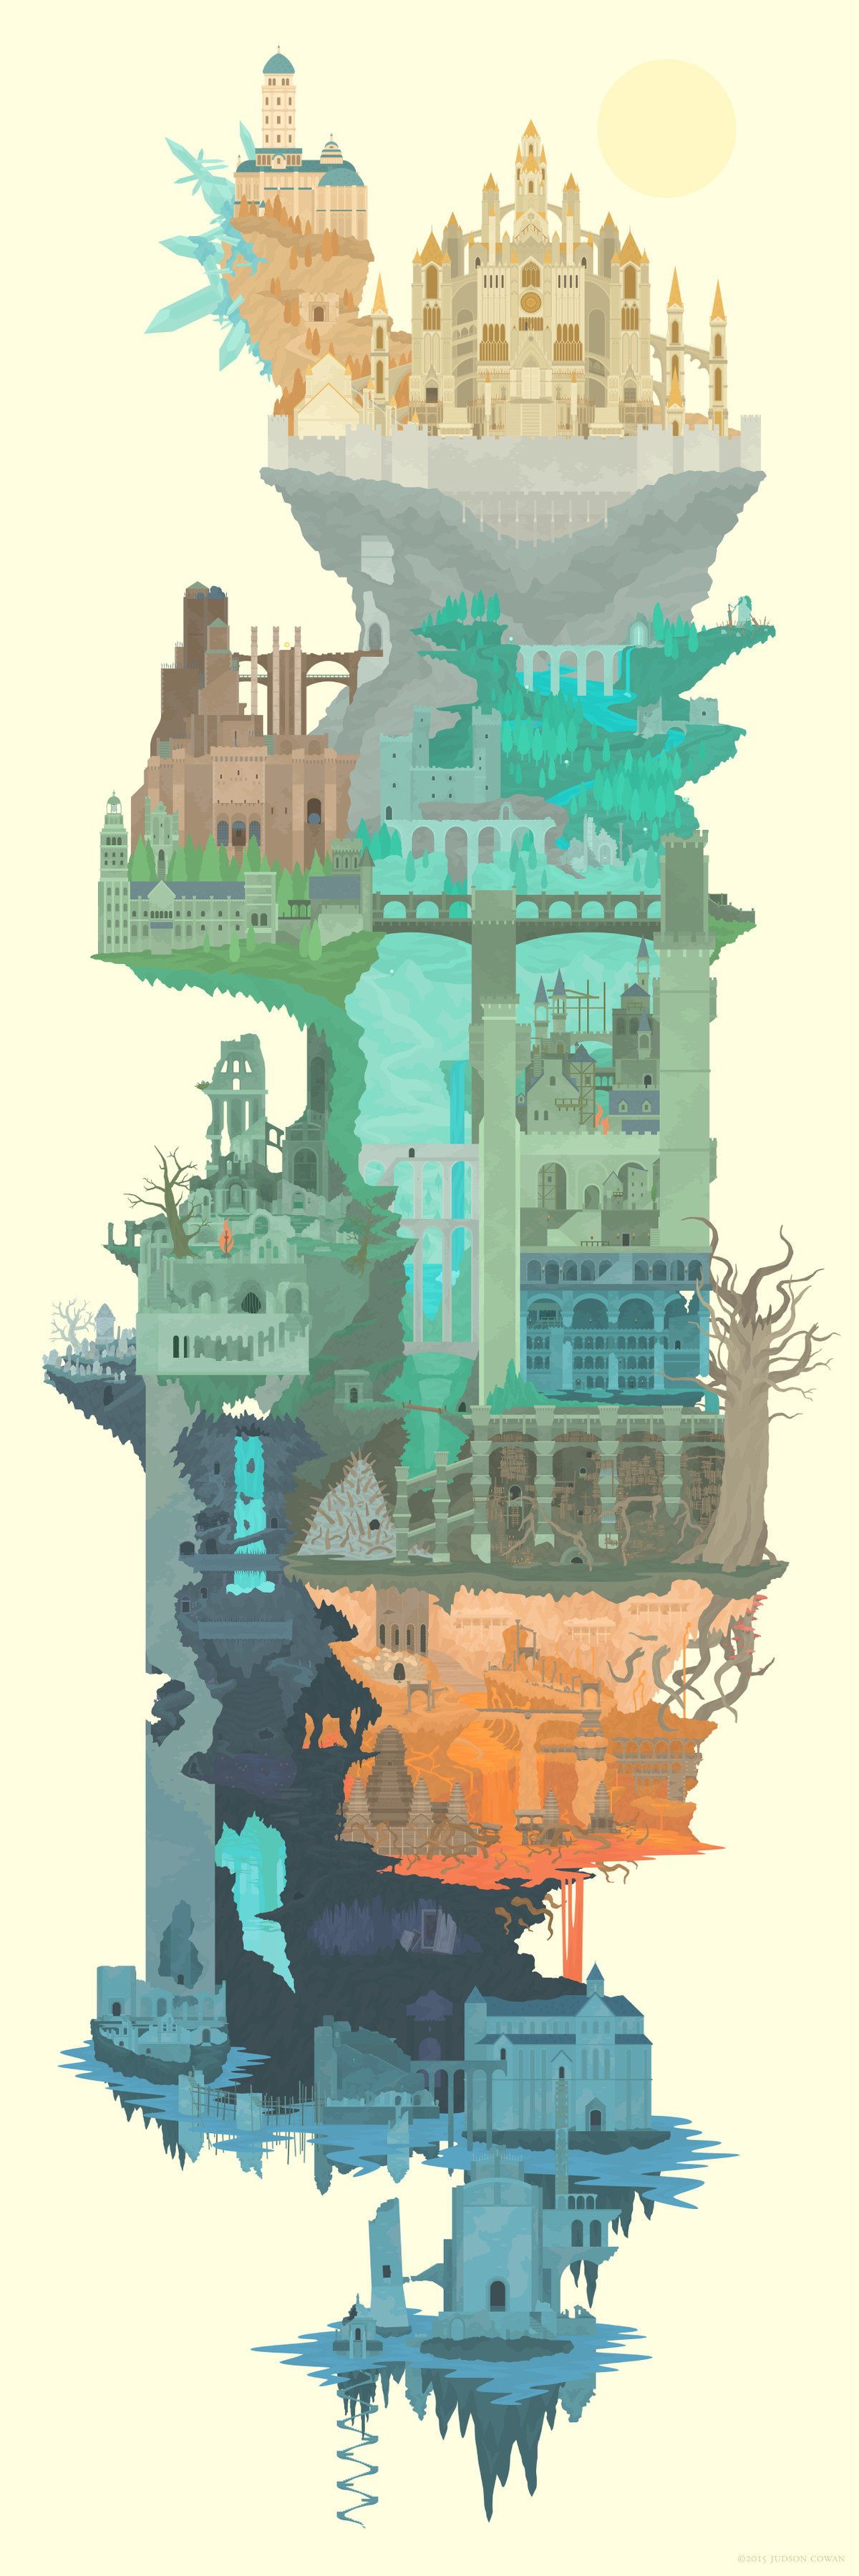 Gaze upon the realm of Dark Souls  in one single image   Polygon lordran full map illustration large